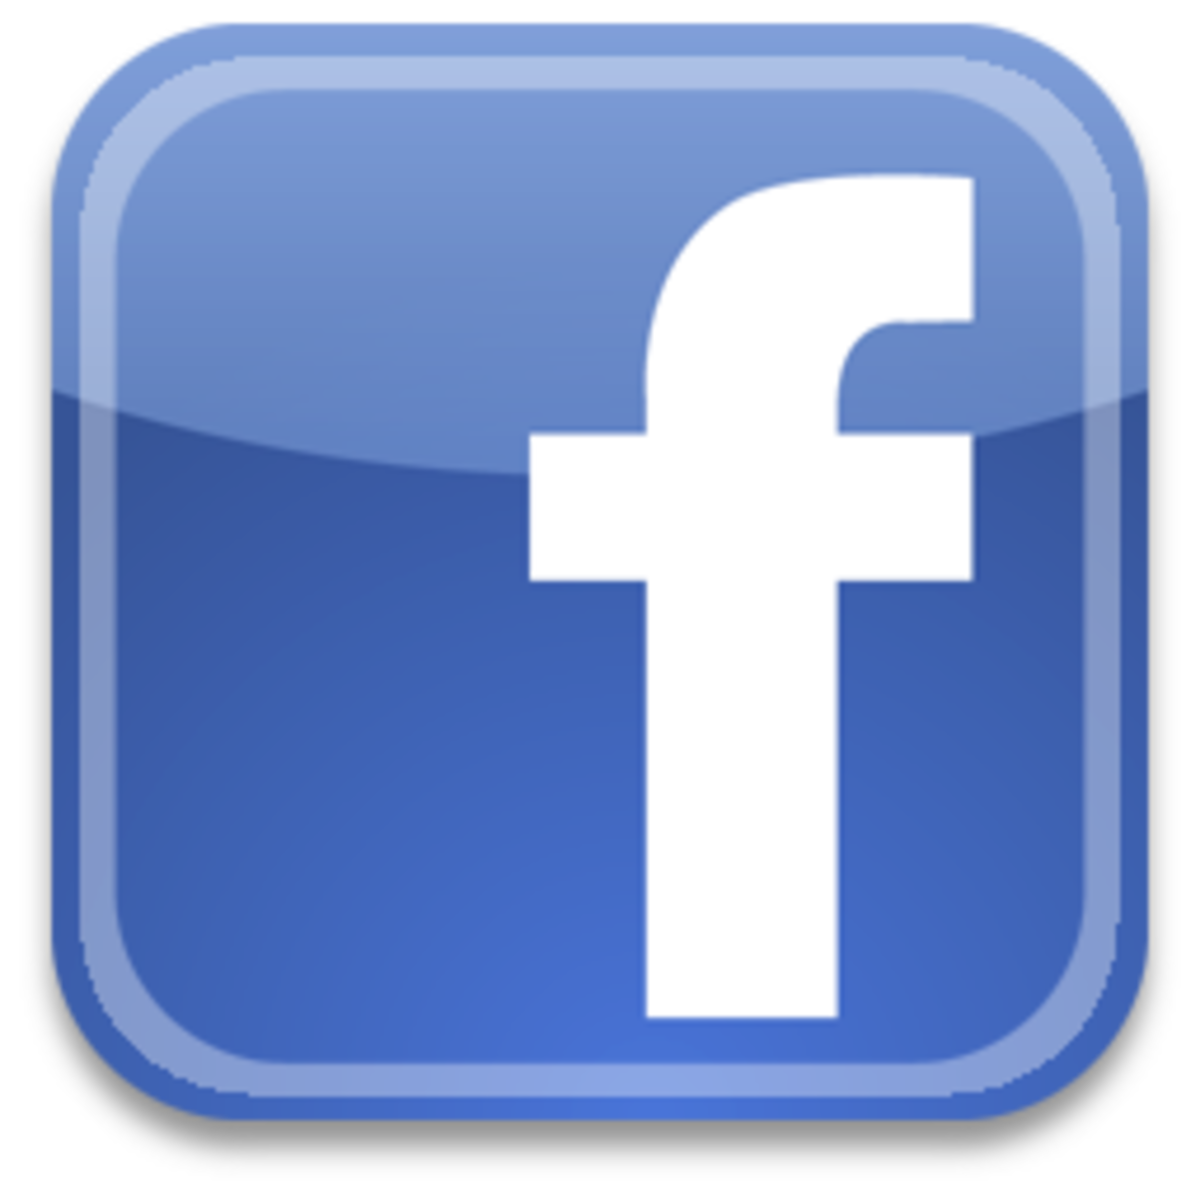 Funny Facebook Activities and Interests to Add to Your Profile